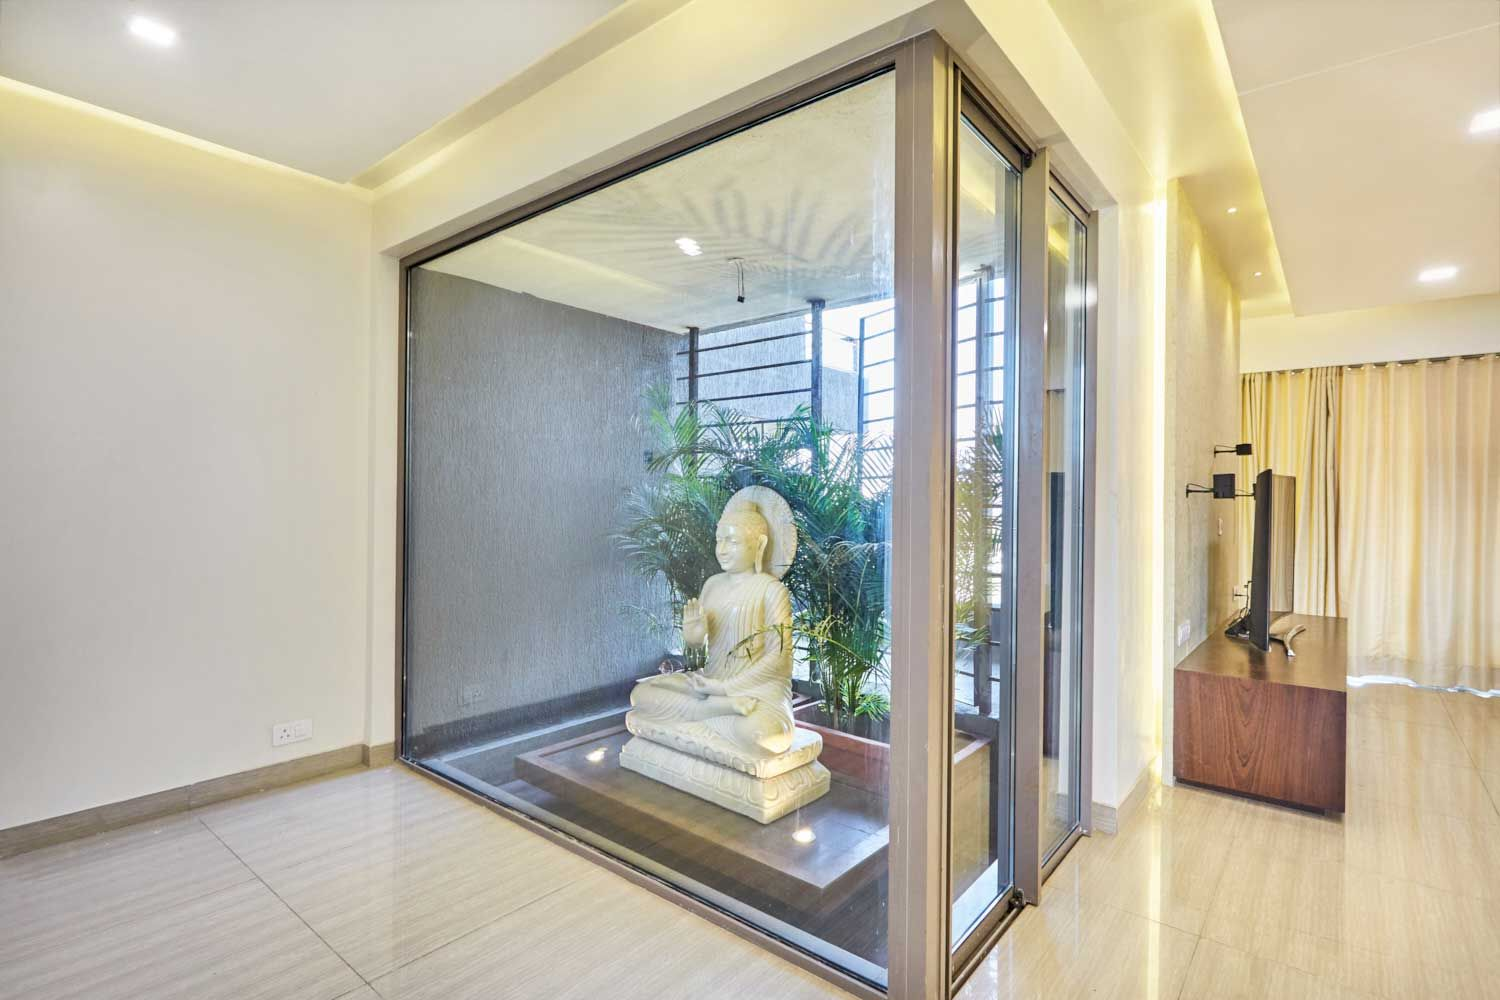 The Address With Images Interior Architecture Residential